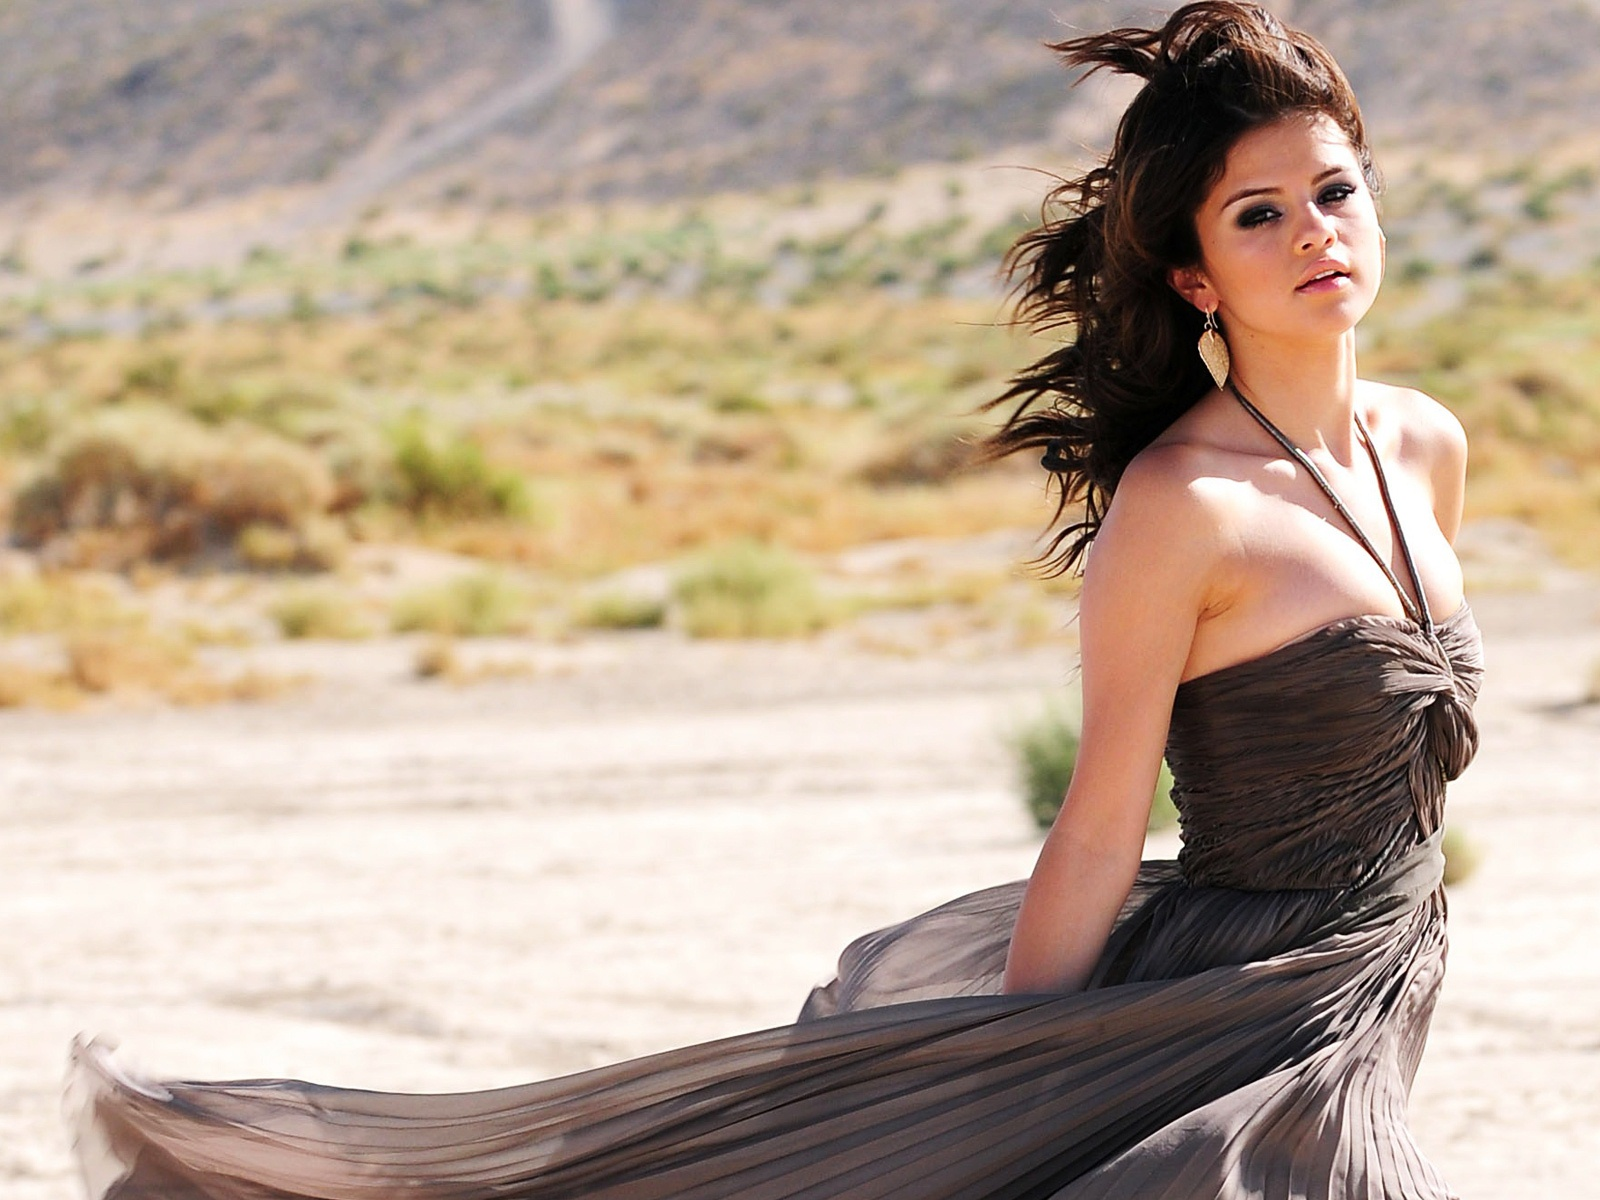 Selena Gomez A Year Without Rain 2010